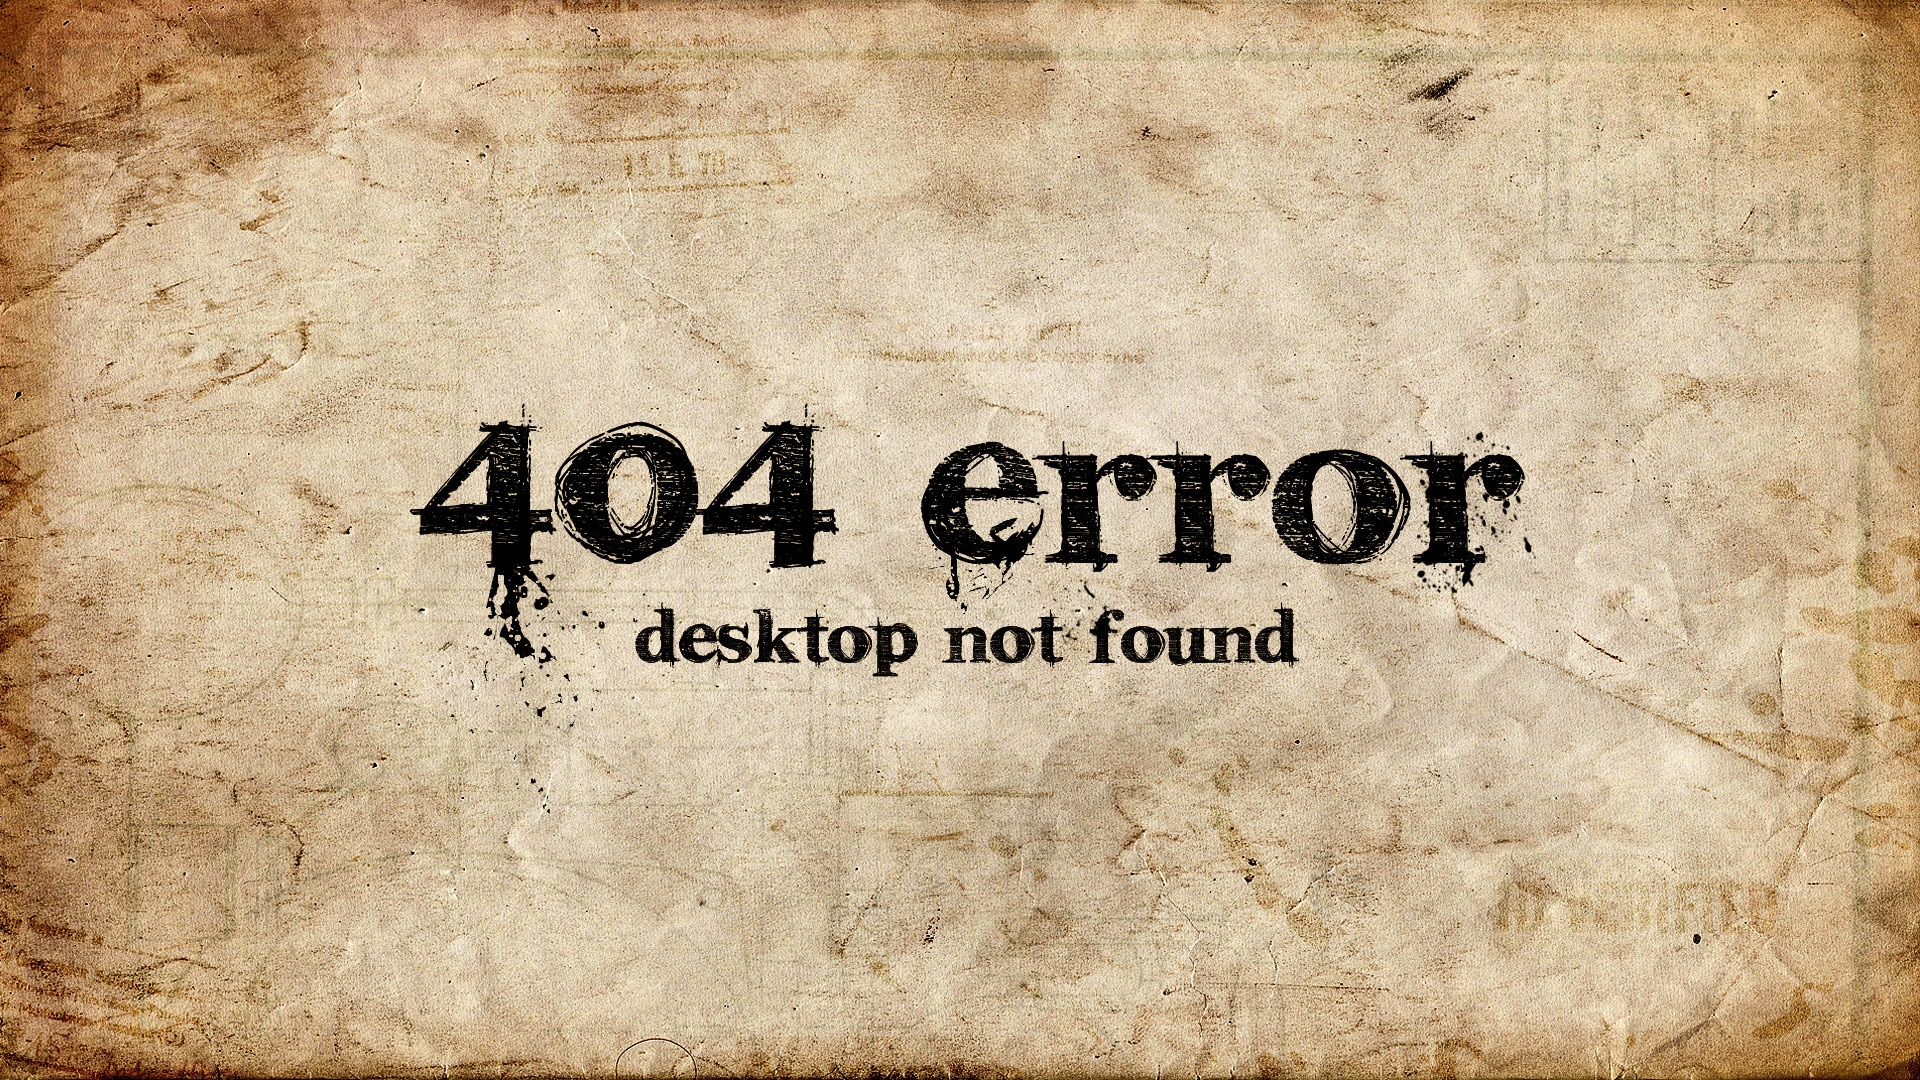 Funny 404 Error wallpaper